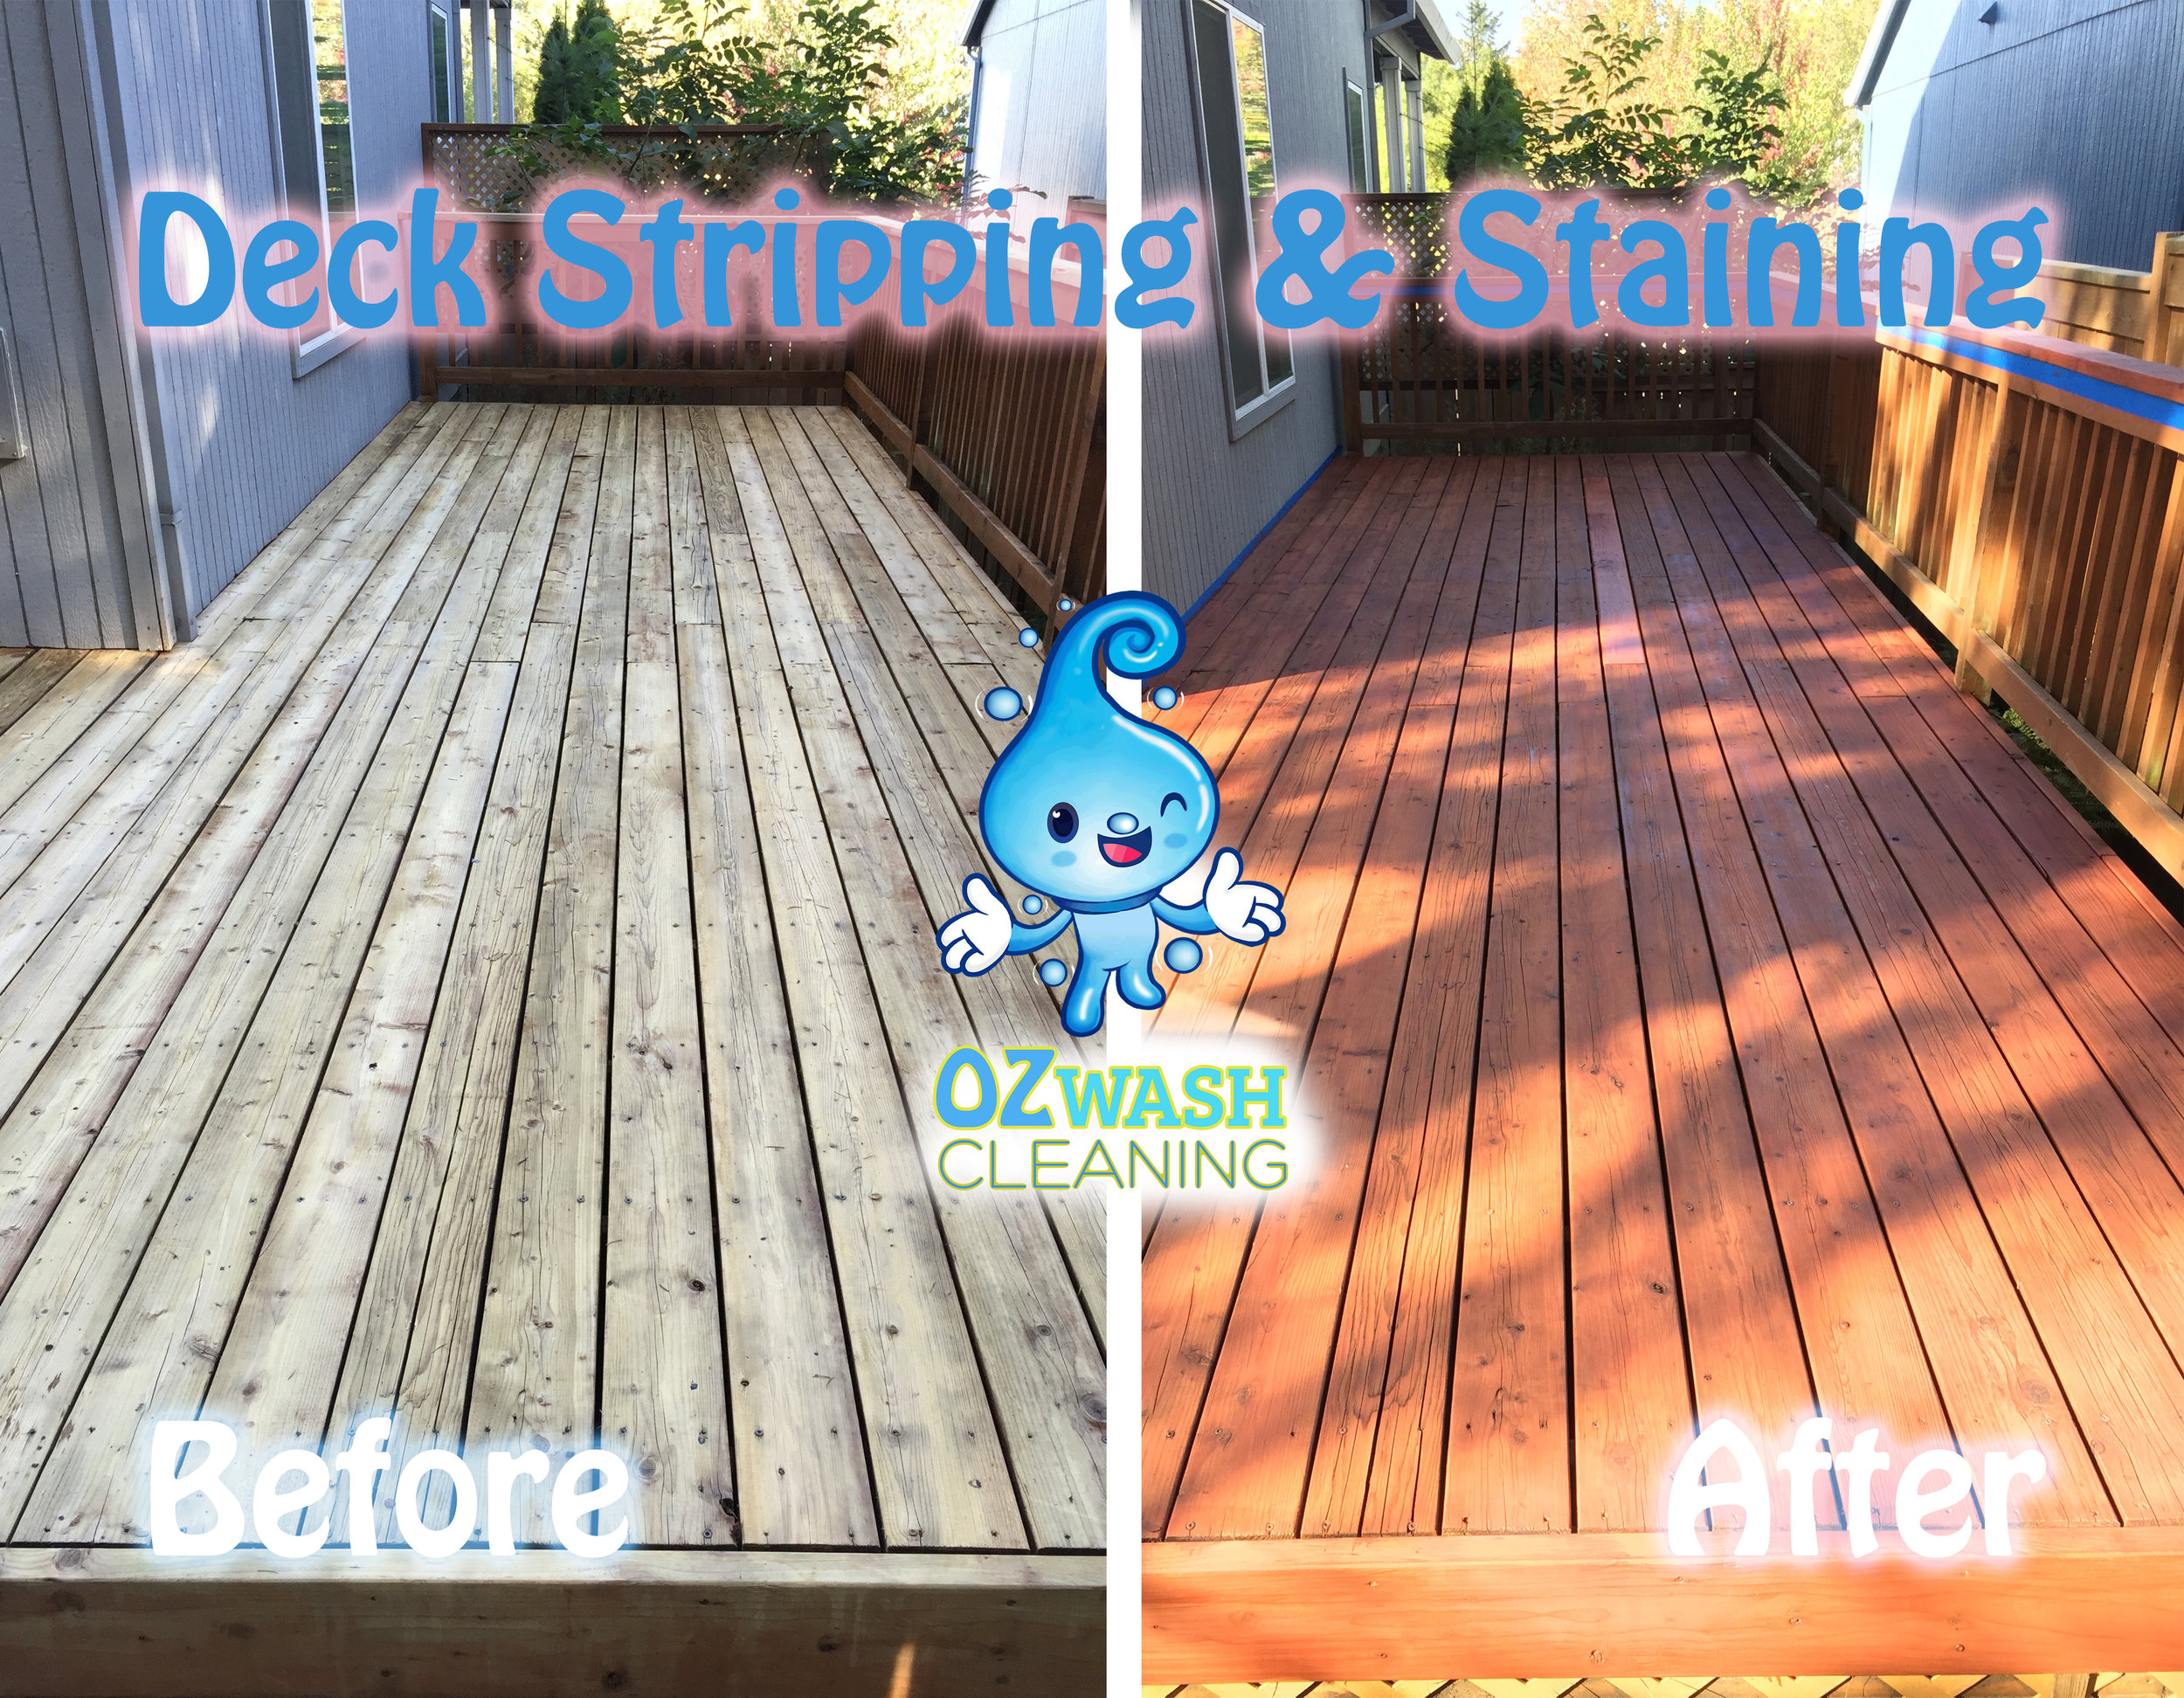 DeckReviving&Staining9.jpg